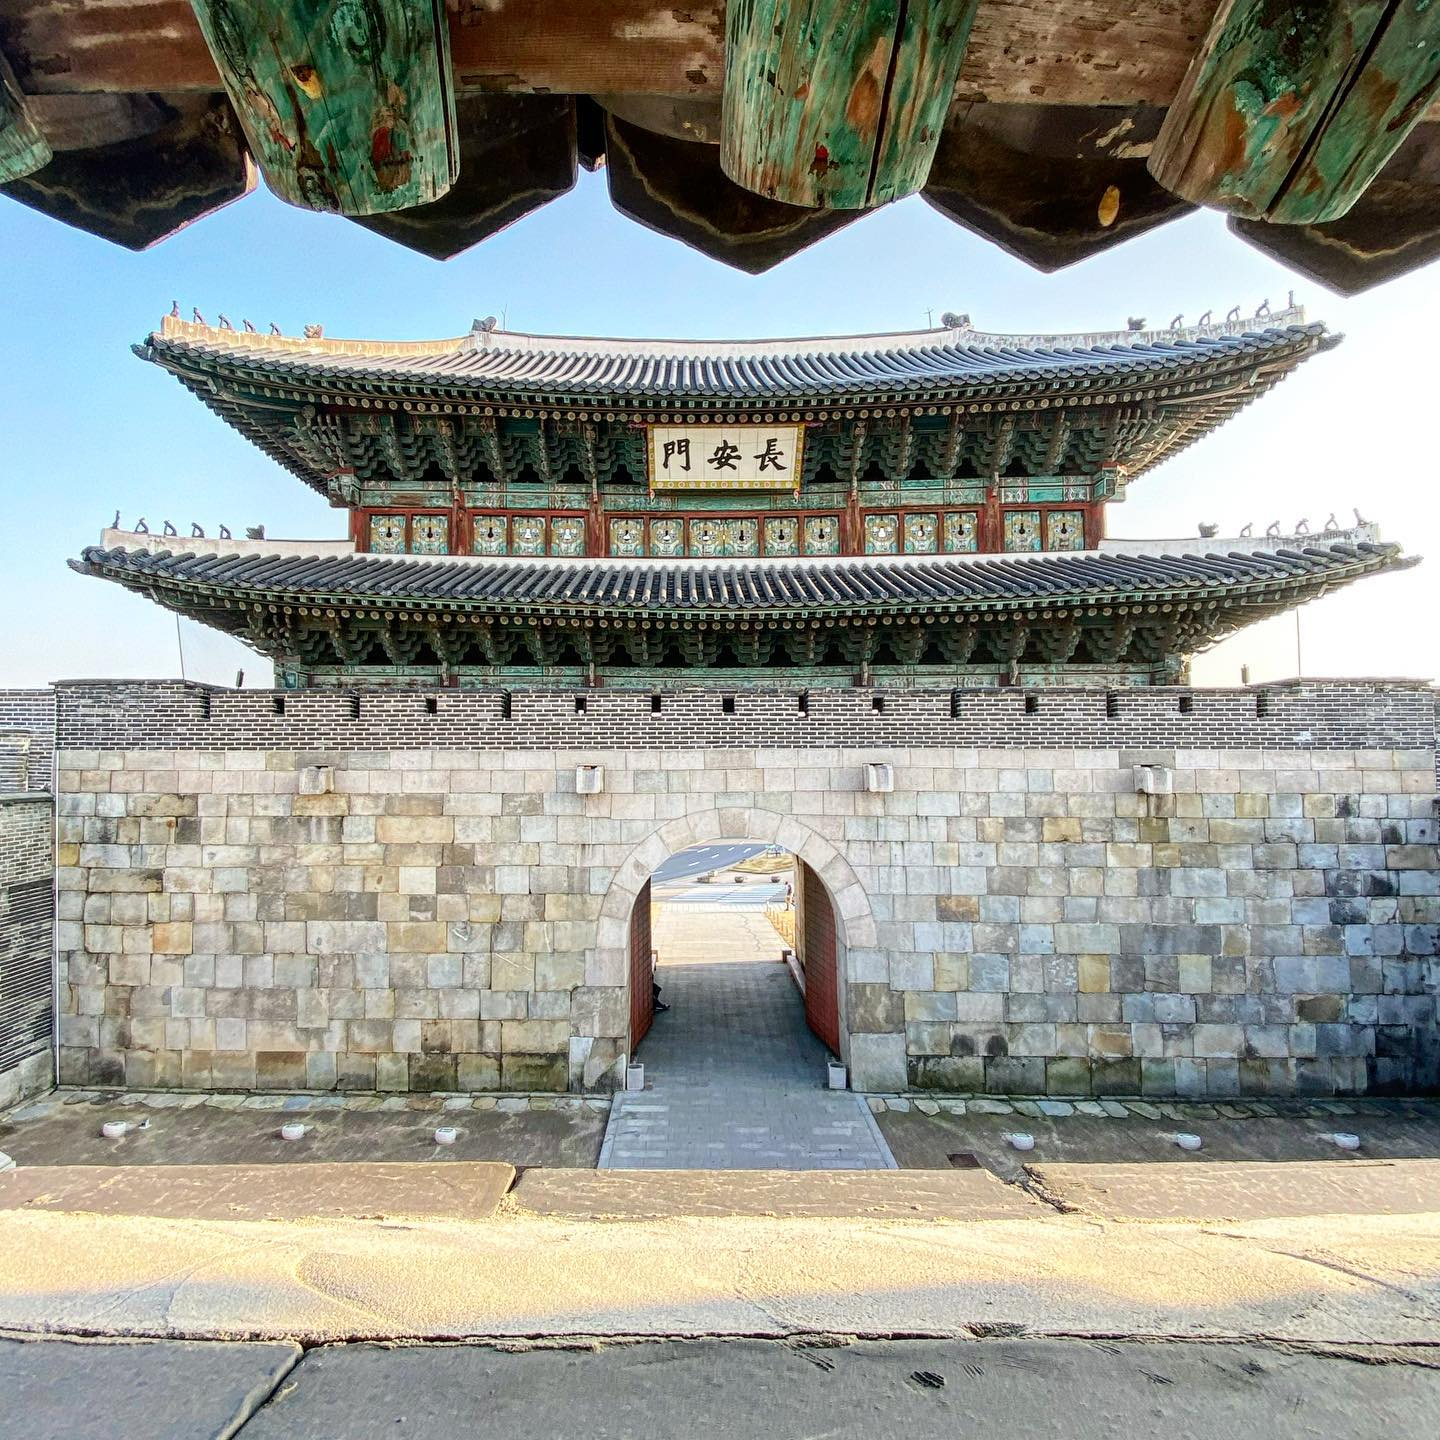 [Hwaseong Fortress] Another UNESCO world heritage site, the Hwaseong Fortress…